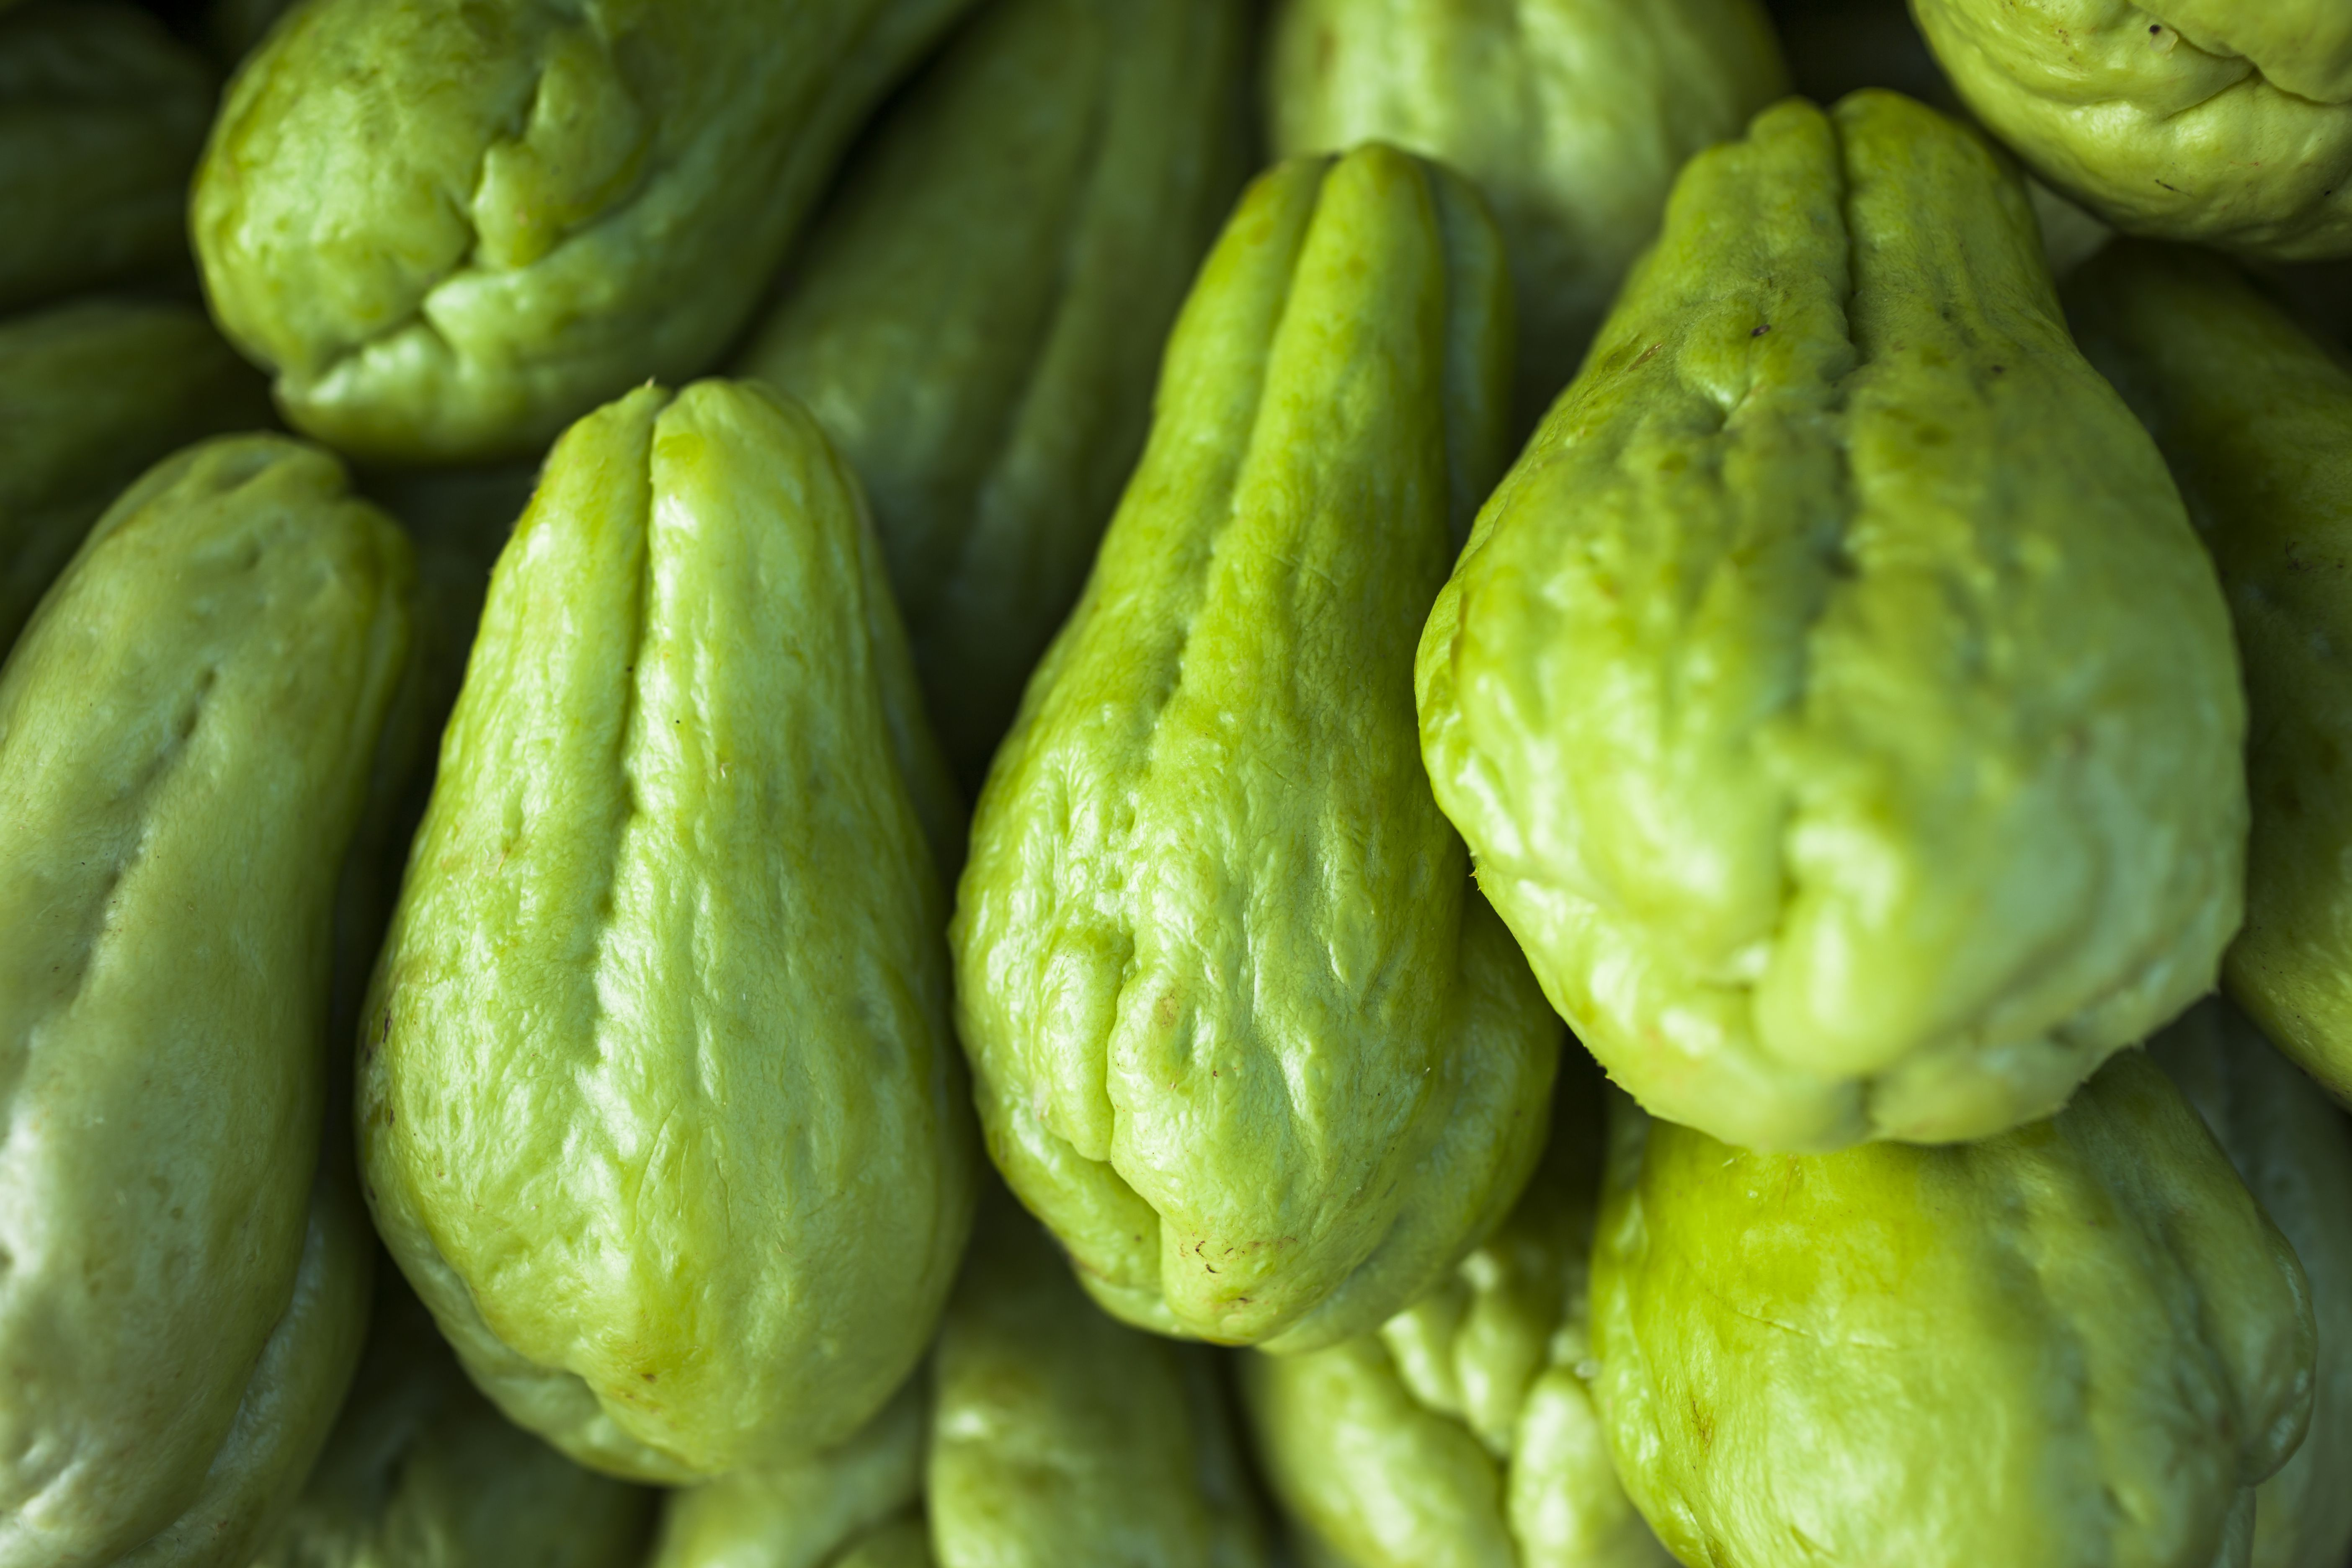 Chayote squash for sale at the produce market